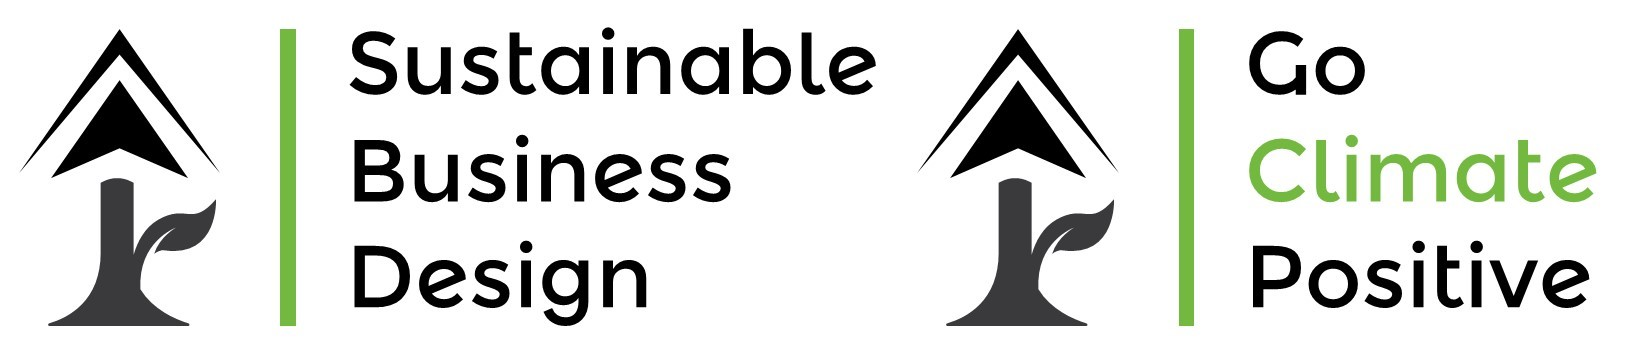 Sustainable Business Design Logo